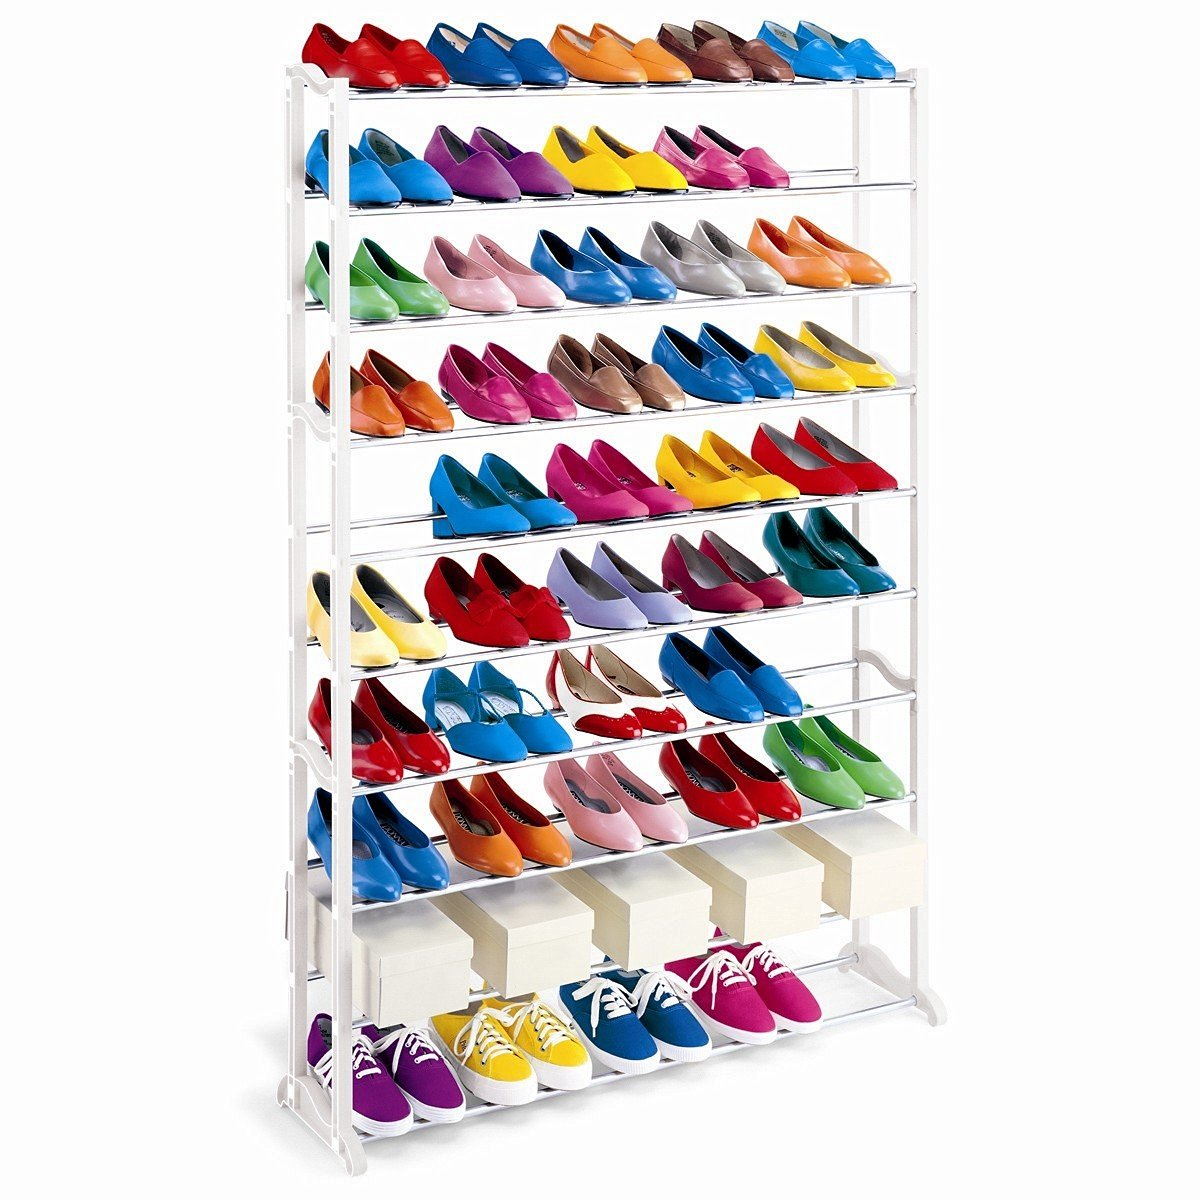 Buy 50 Pair Shoe Rack White Metal Quality Shoe Rack Shoe